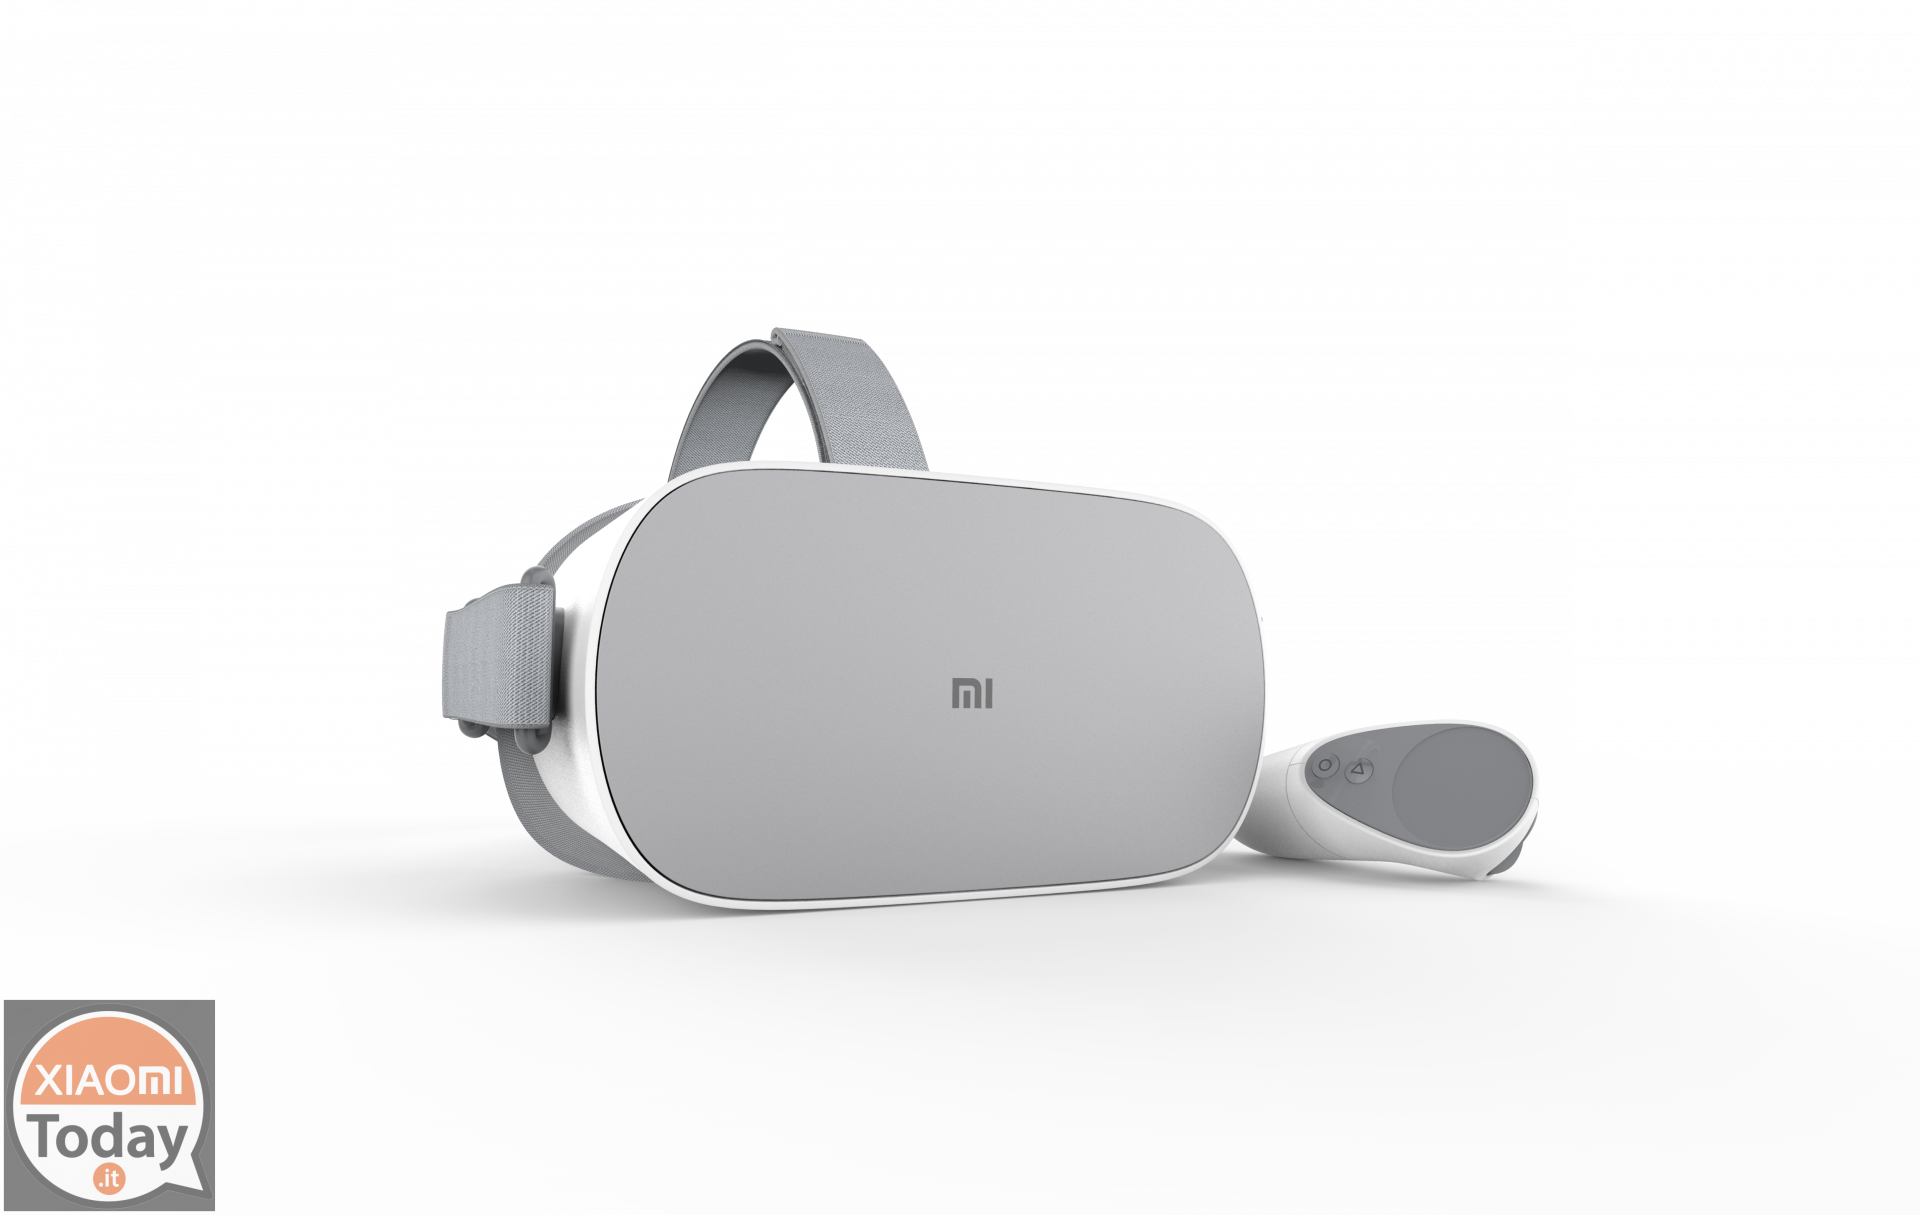 2610da7d811f The Xiaomi Mi VR Standalone viewer itself was created by Xiaomi s  collaboration with the virtual reality giant Oculus. With its strong point